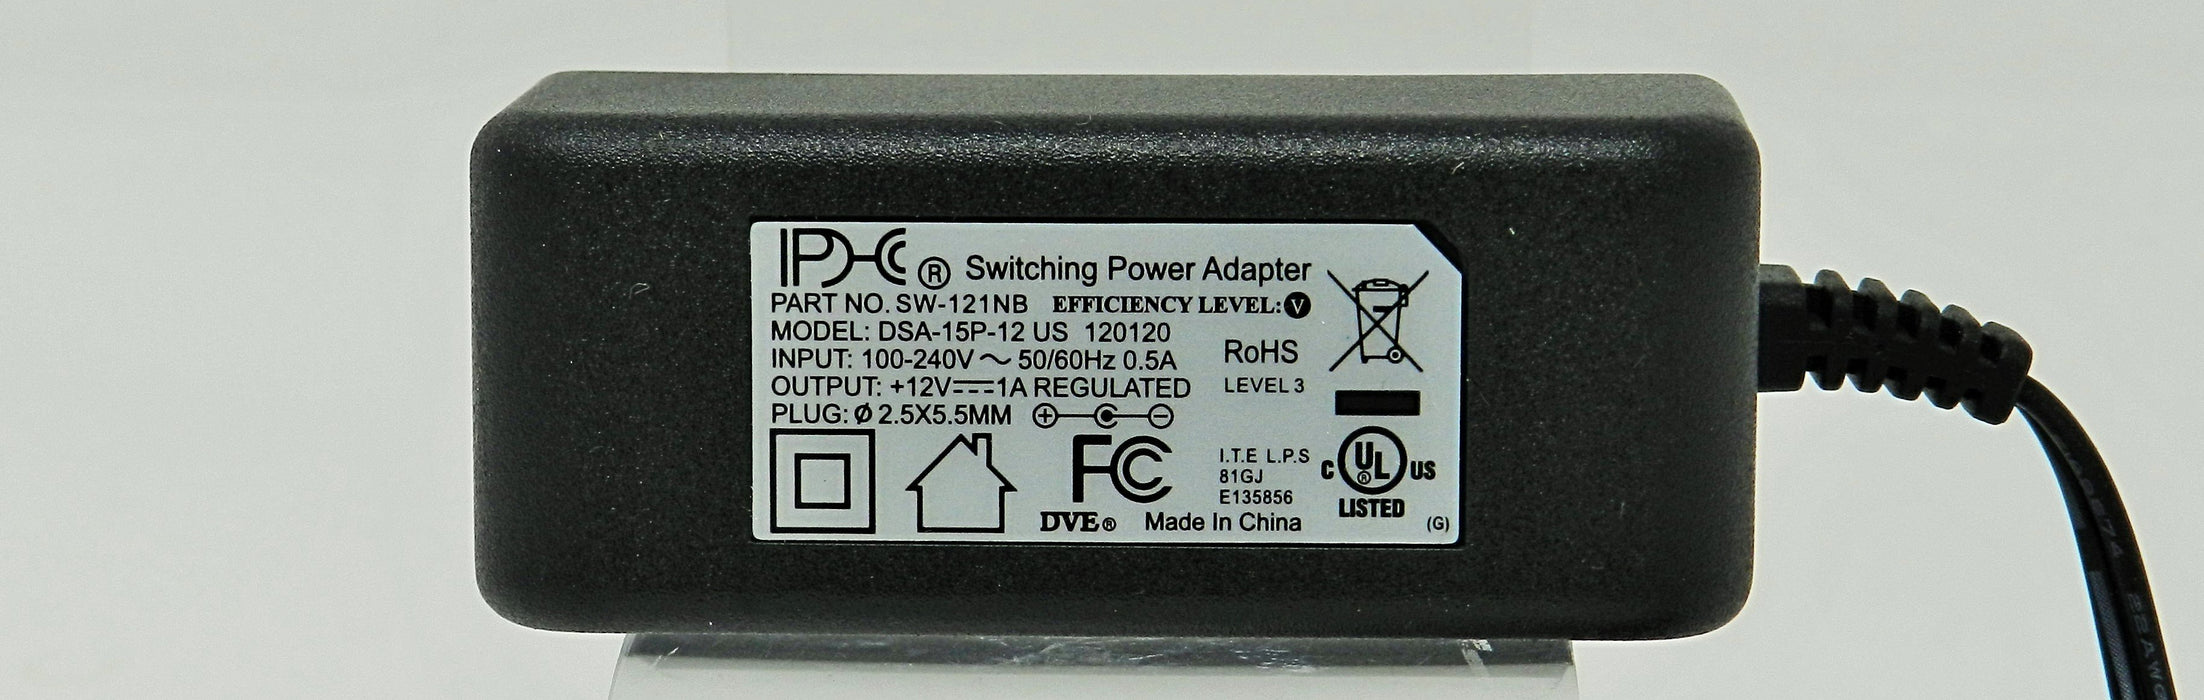 AC-DC Switching Regulated Power Supply 12VDC @ 1000mA; 2.5 x 5.5mm NEGATIVE center polarity; Part # SW-121NB